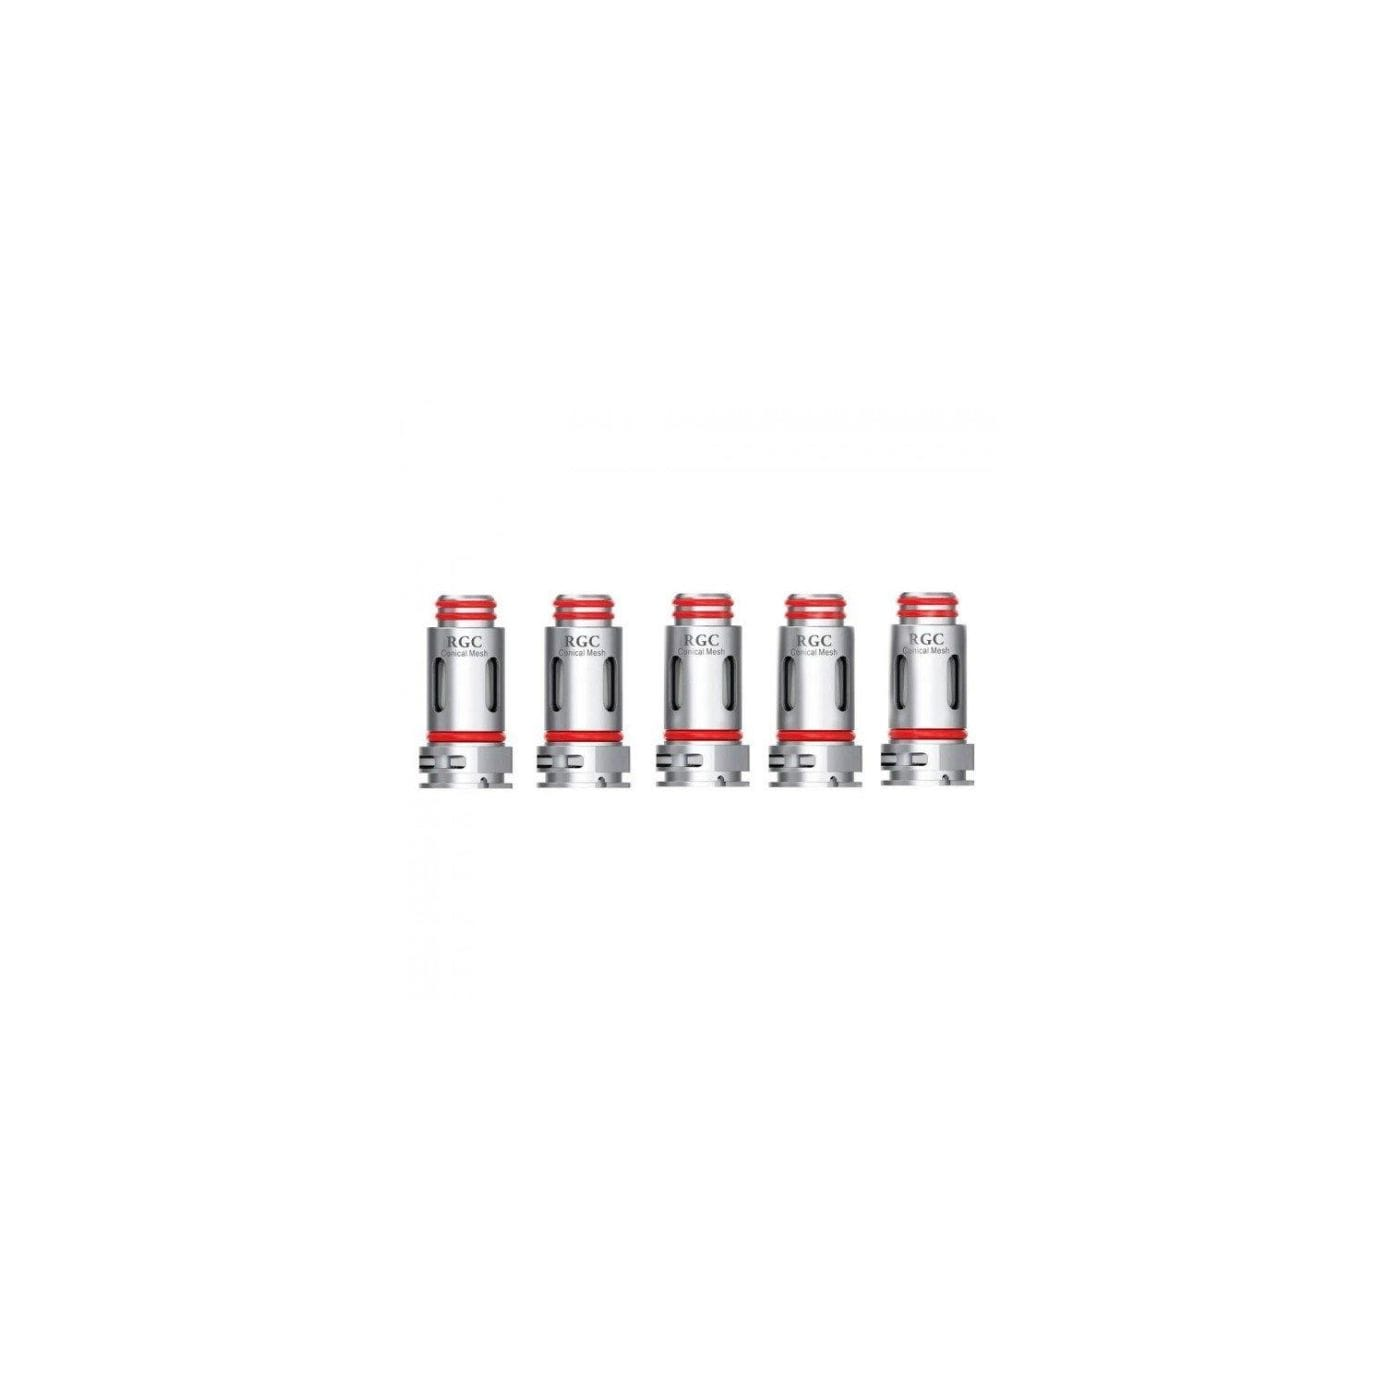 Smok RGC Conical Mesh Replacement Coil - 5 Pack